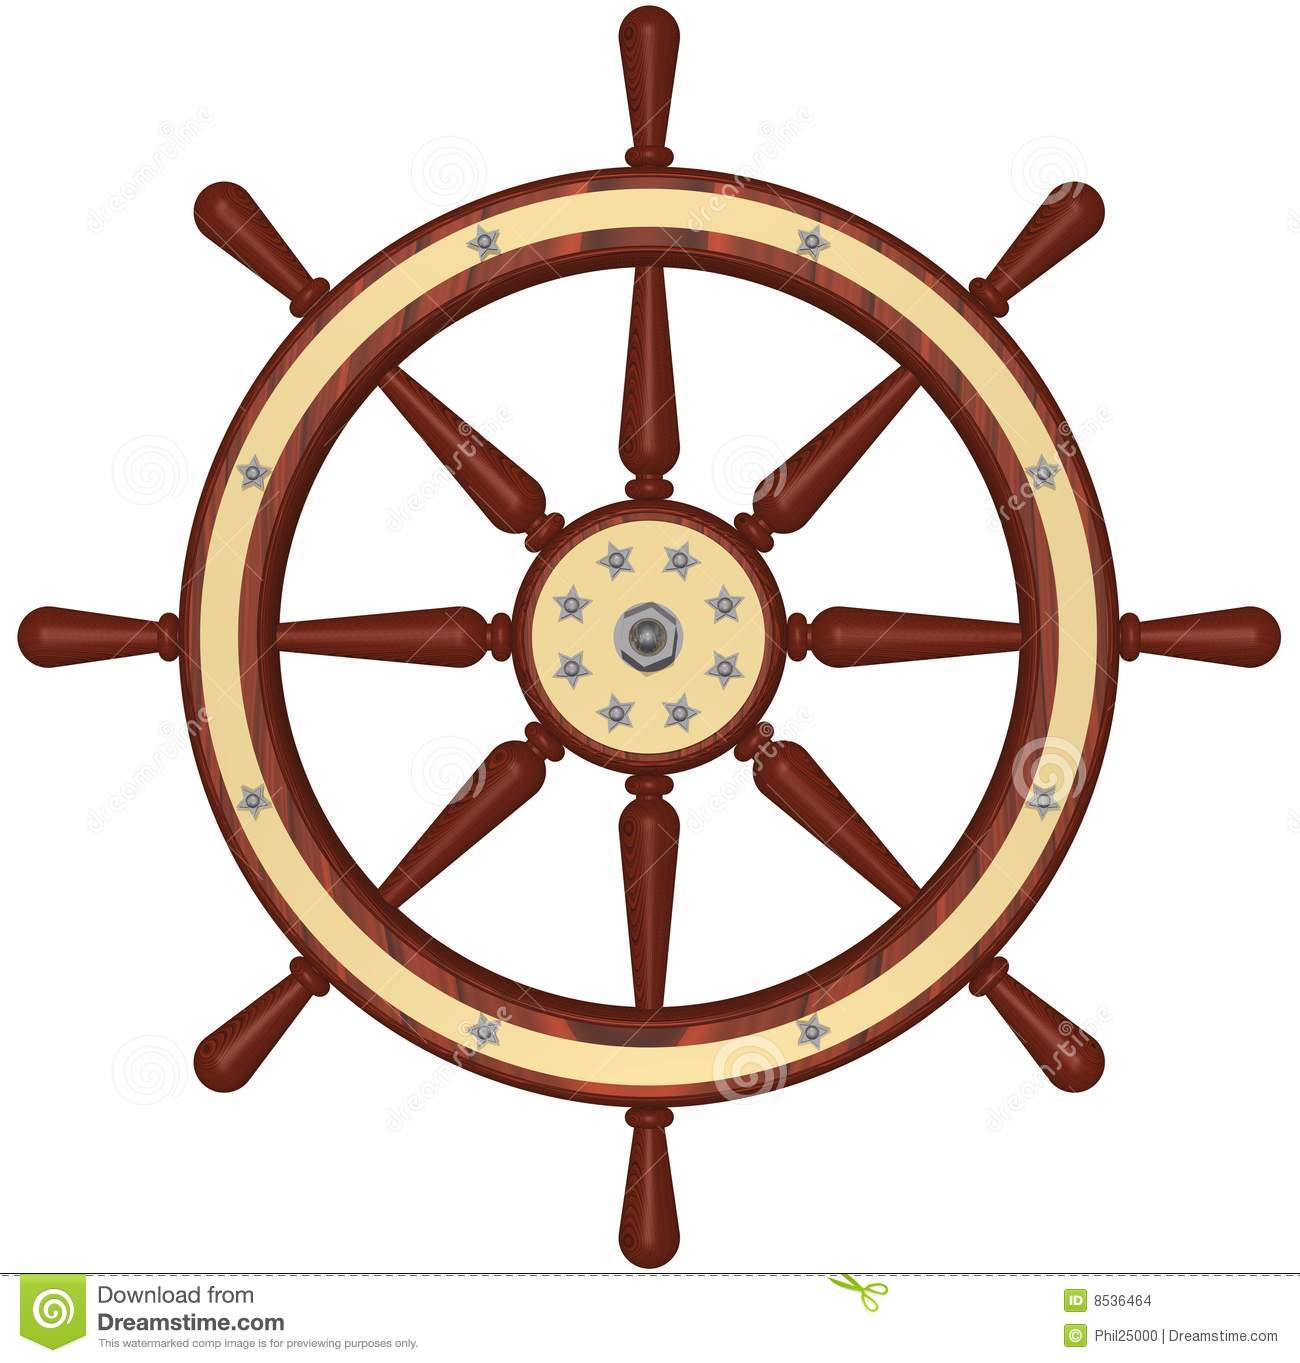 clipart ship steering wheel - photo #31